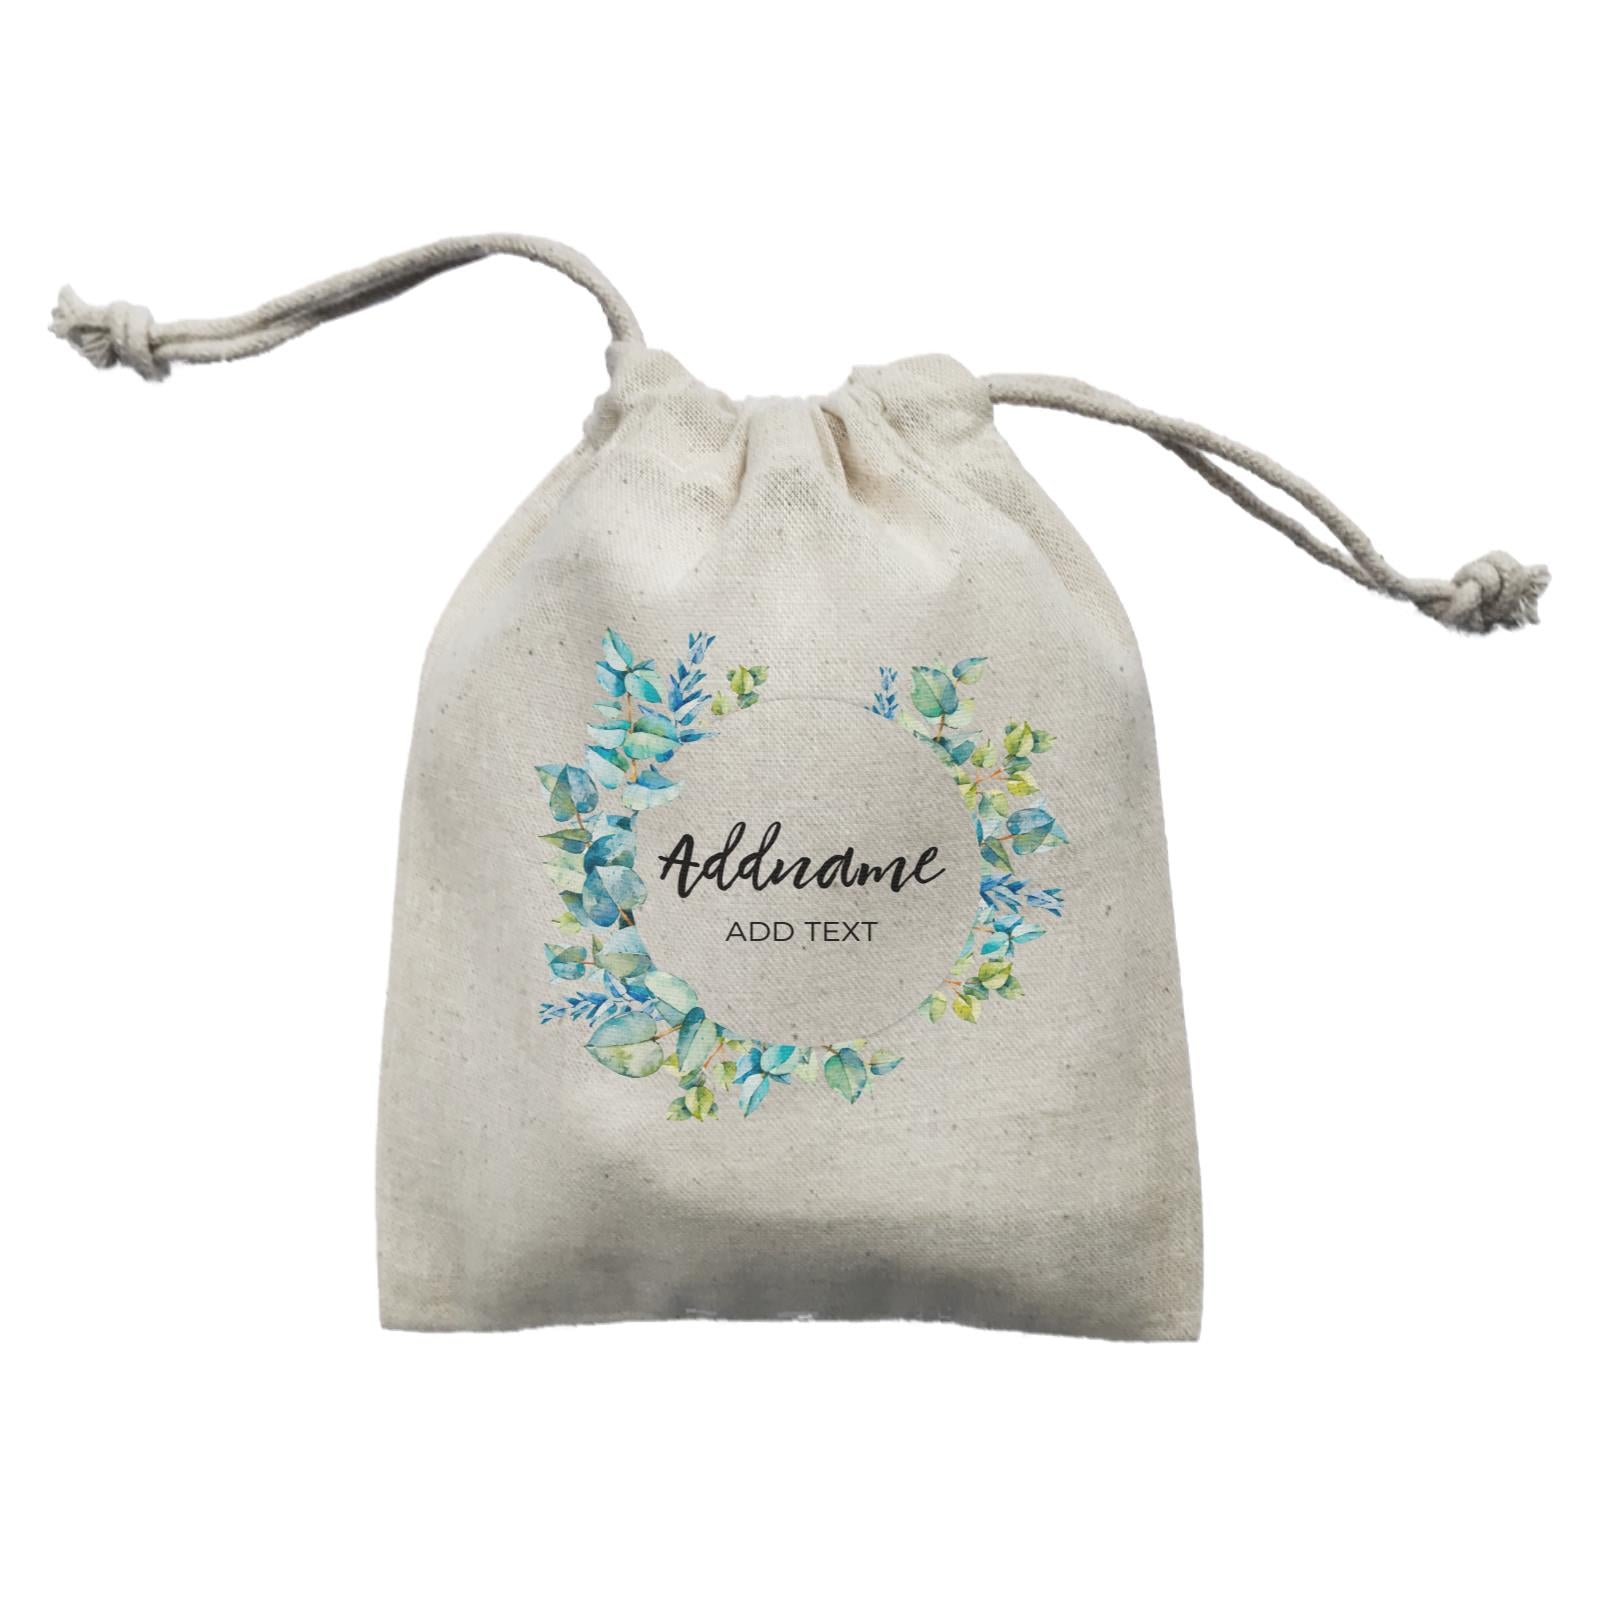 Add Your Own Text Teacher Blue Leaves Wreath Addname And Add Text Mini Pouch